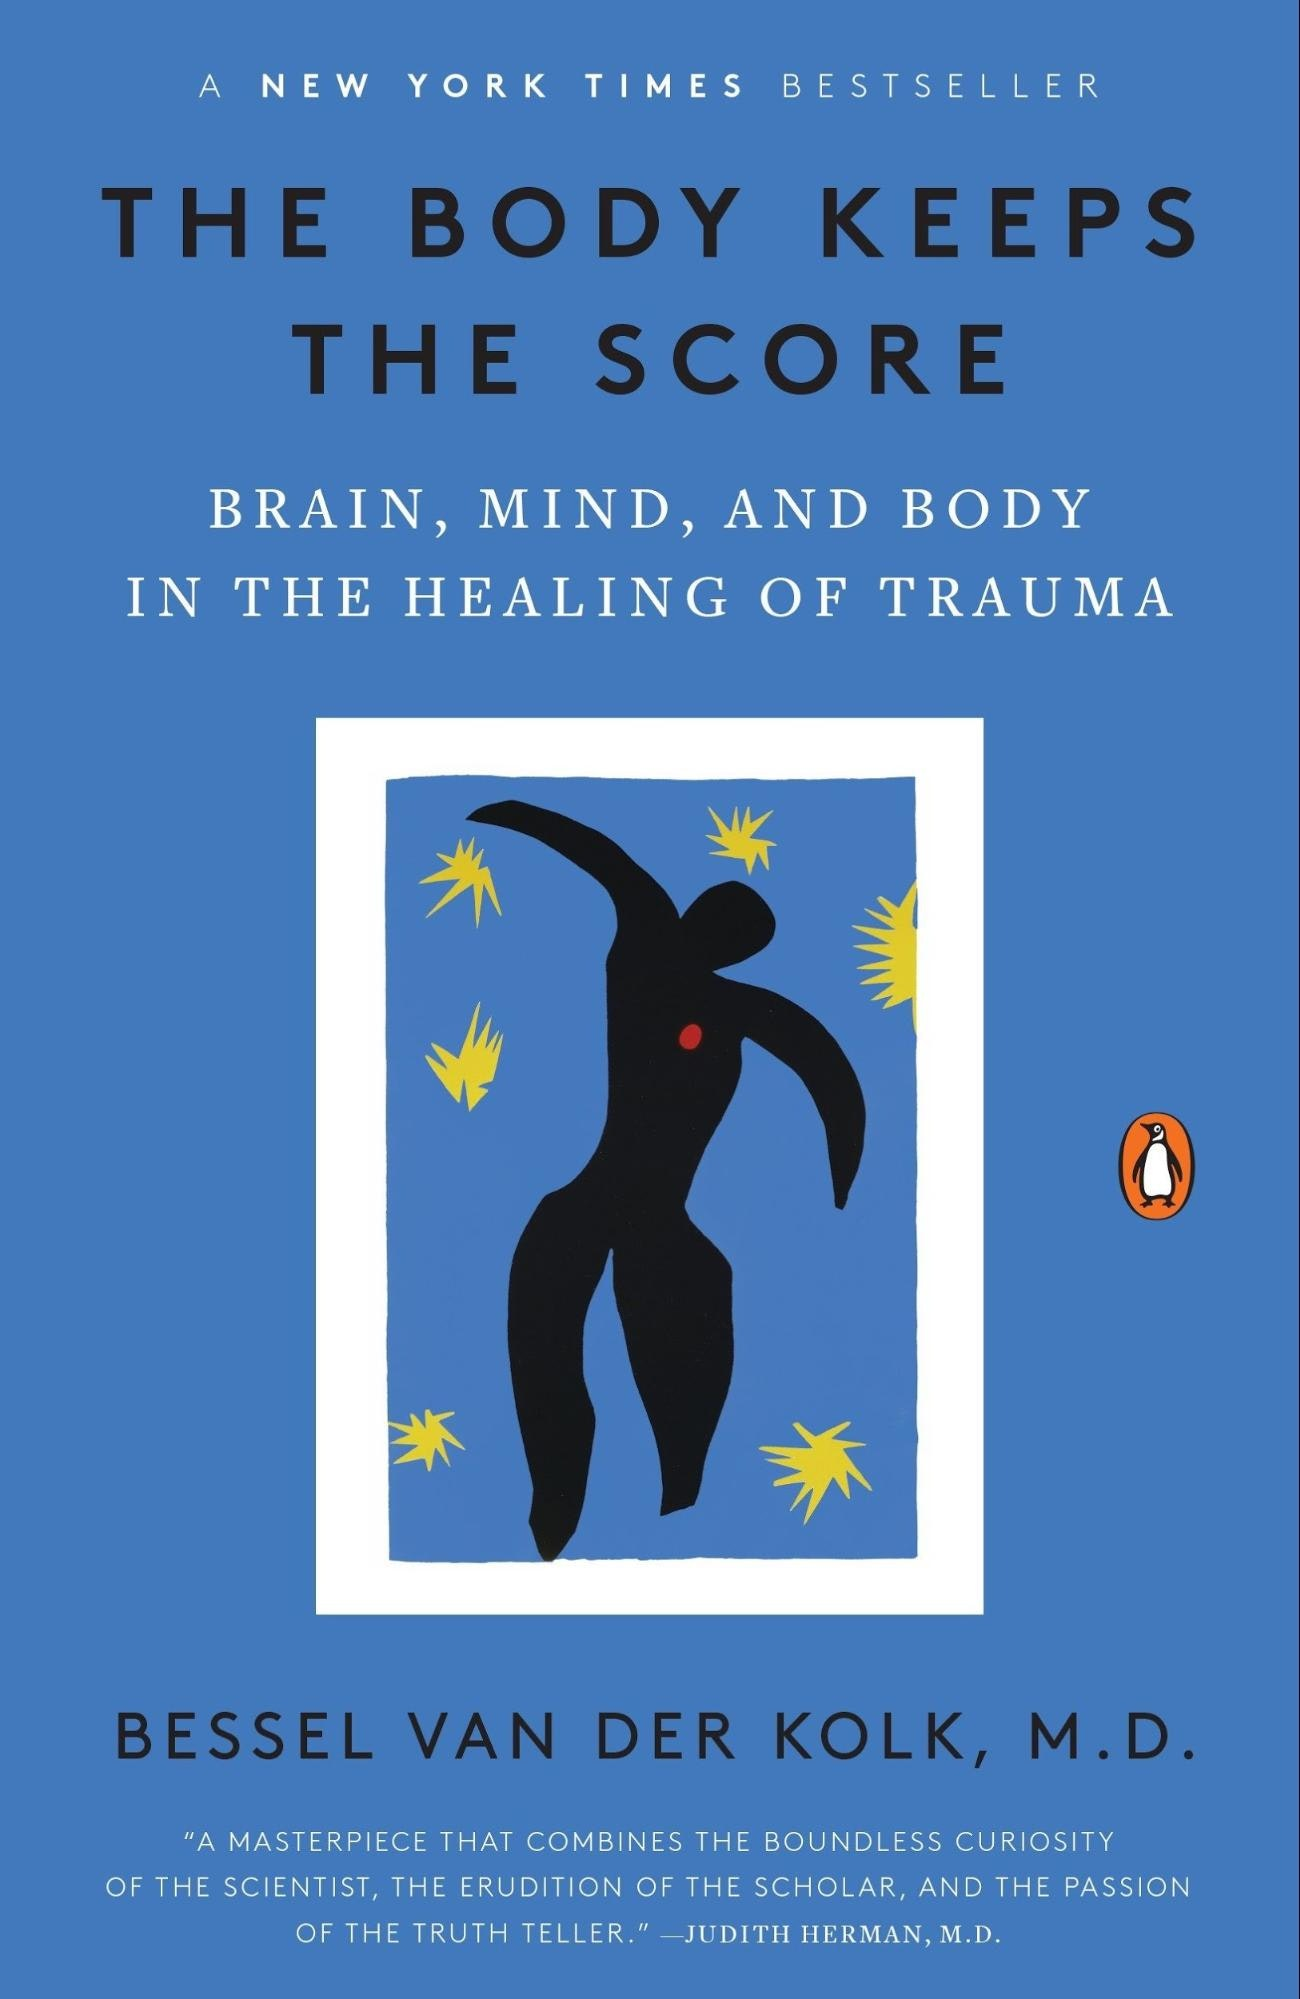 The Body Keeps the Score – Bessel Van Der Kolk, M.D.